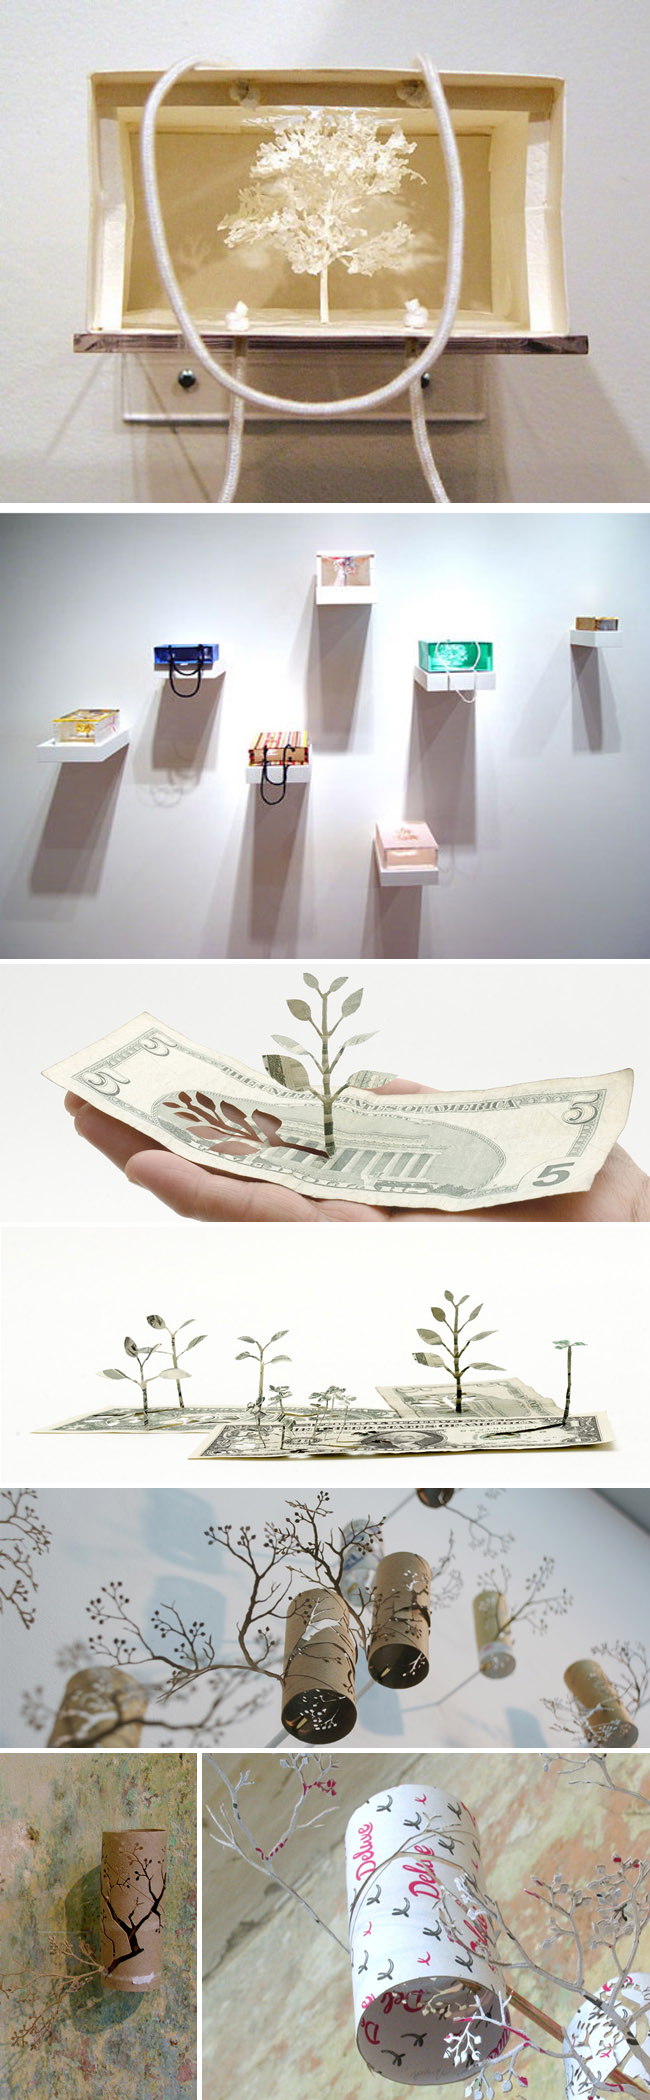 Paper cutout trees, repurposed paper bags. Contemporary Japanese art, money art, toilet paper roll art